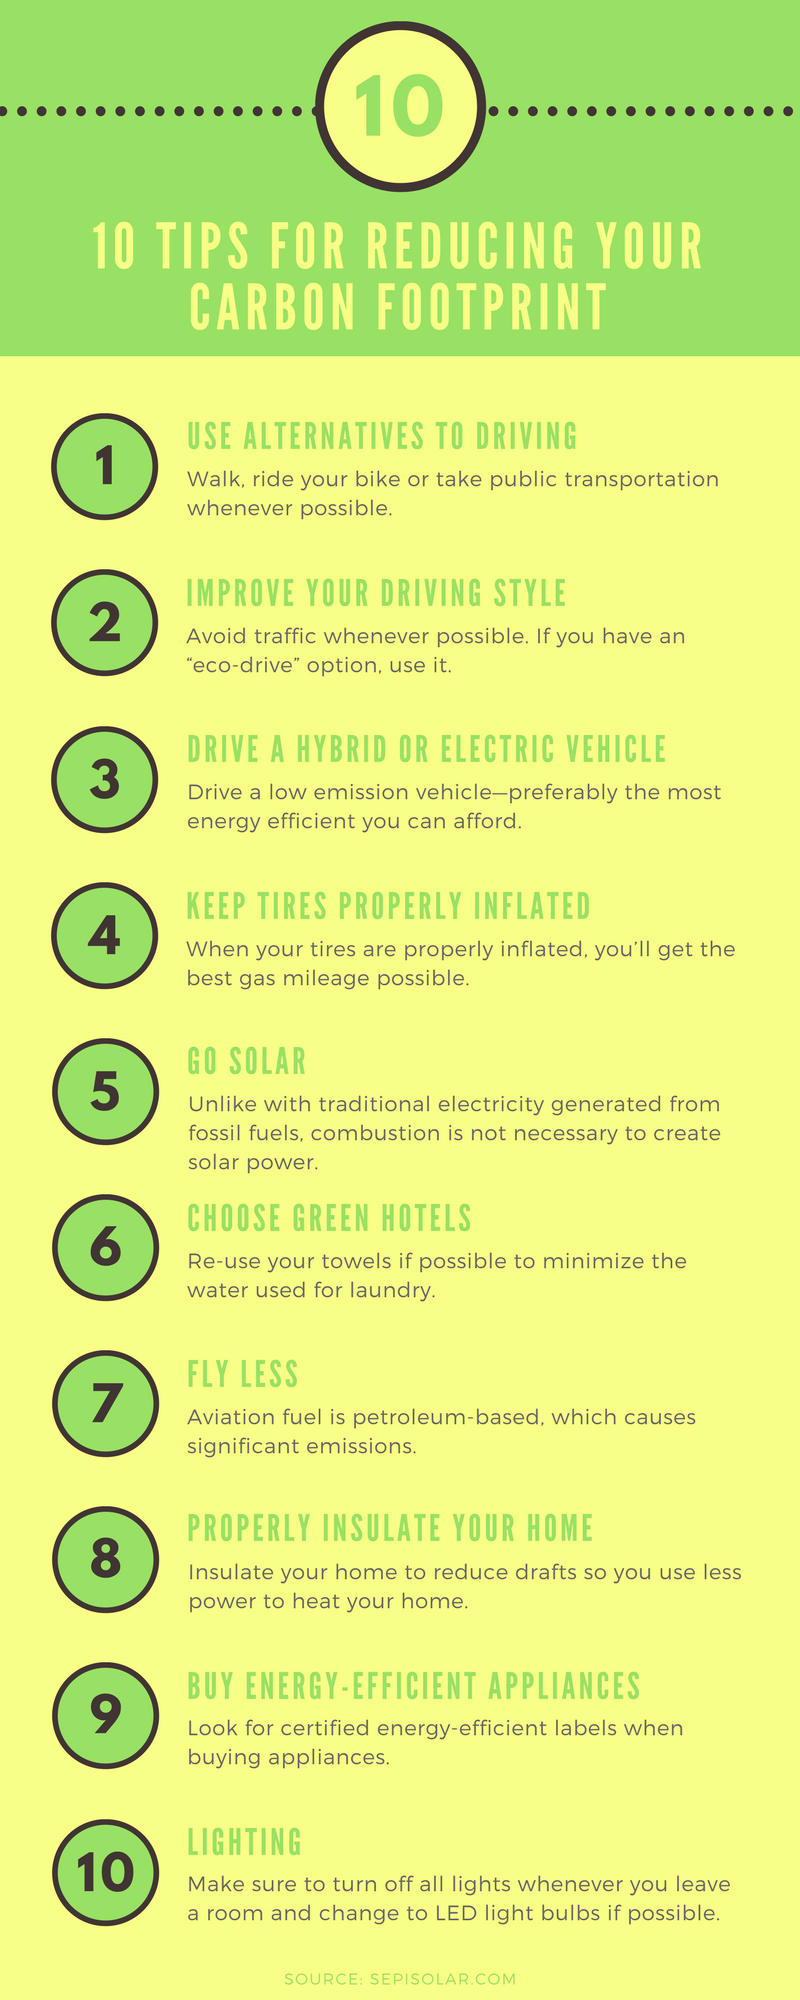 10 Tips For Reducing Your Carbon Footprint Carbon Footprint Reducing Carbon Footprint Footprint